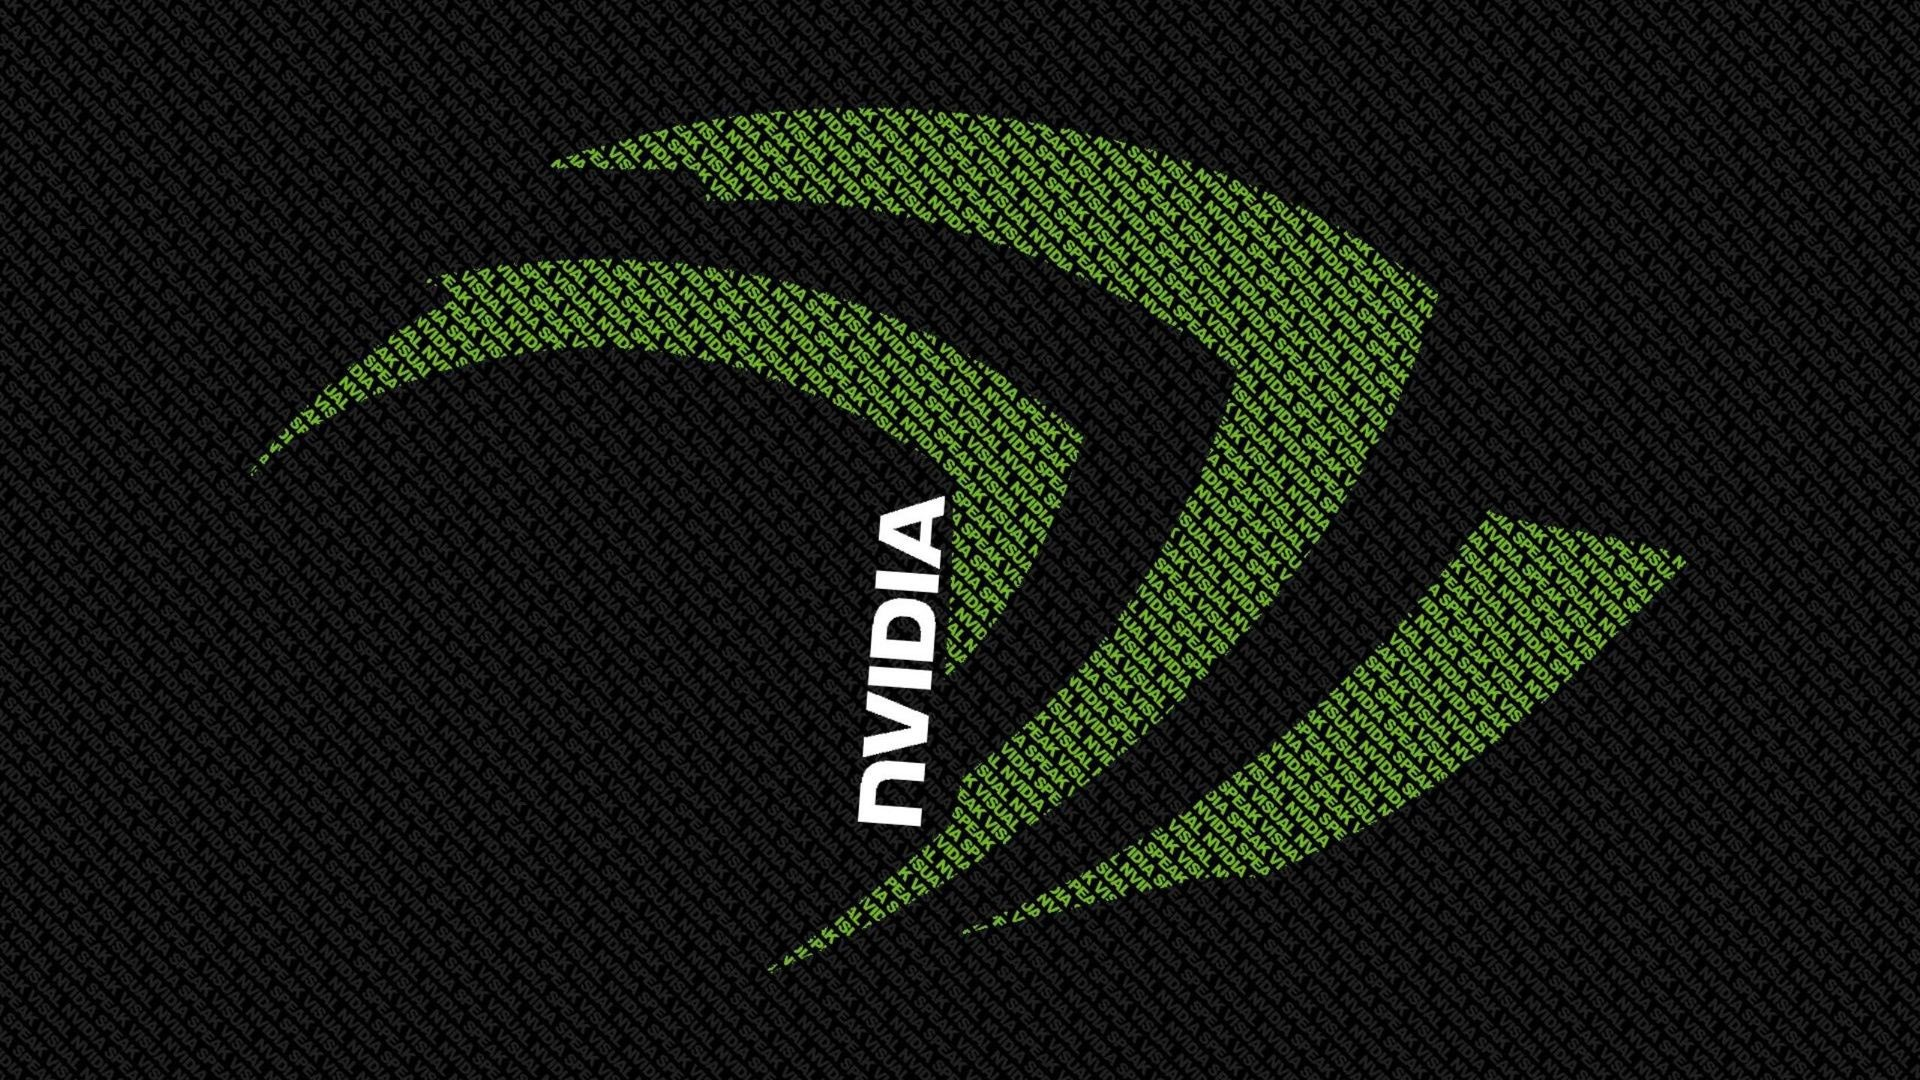 Nvidia Wallpaper and Background